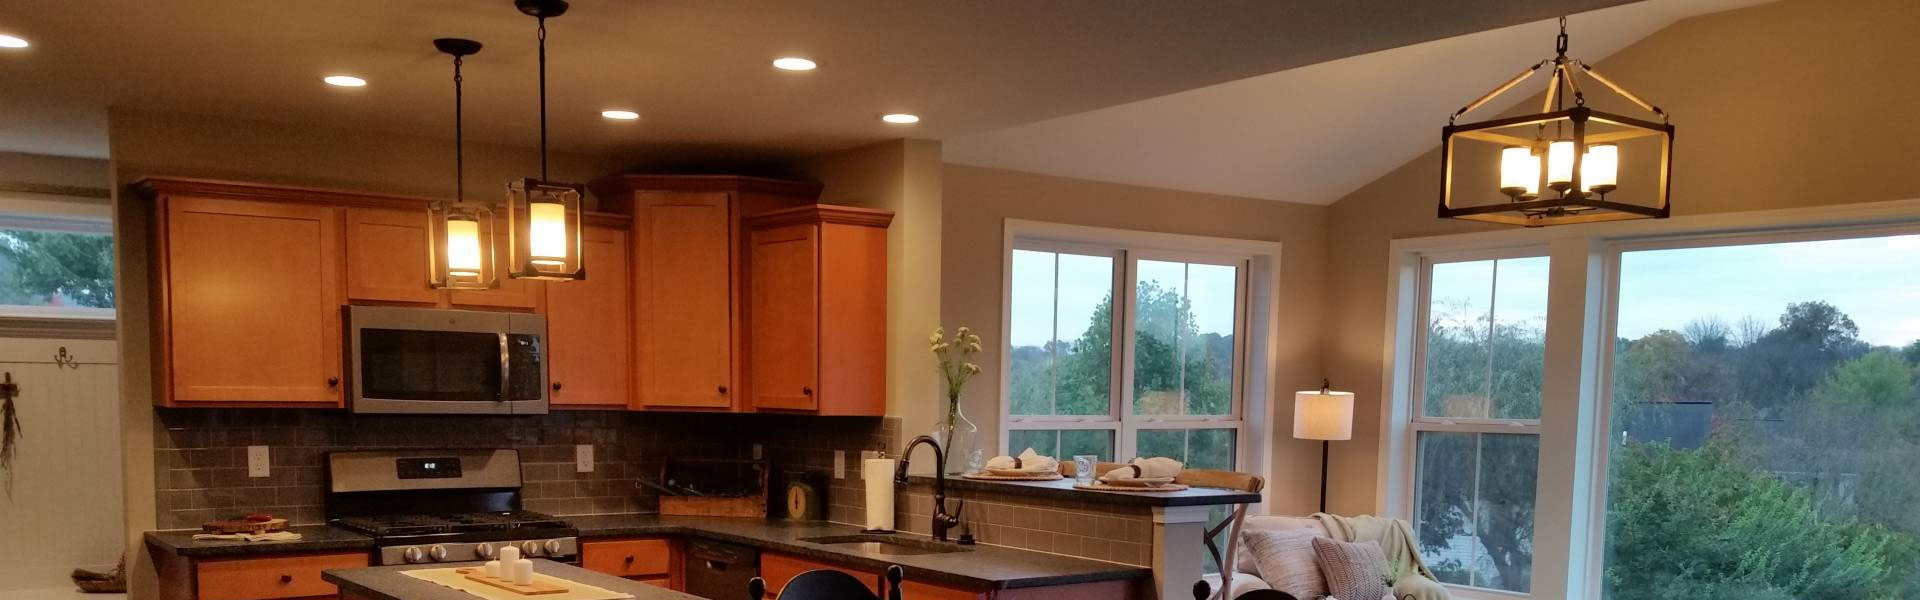 redidential electric installers lancaster pa